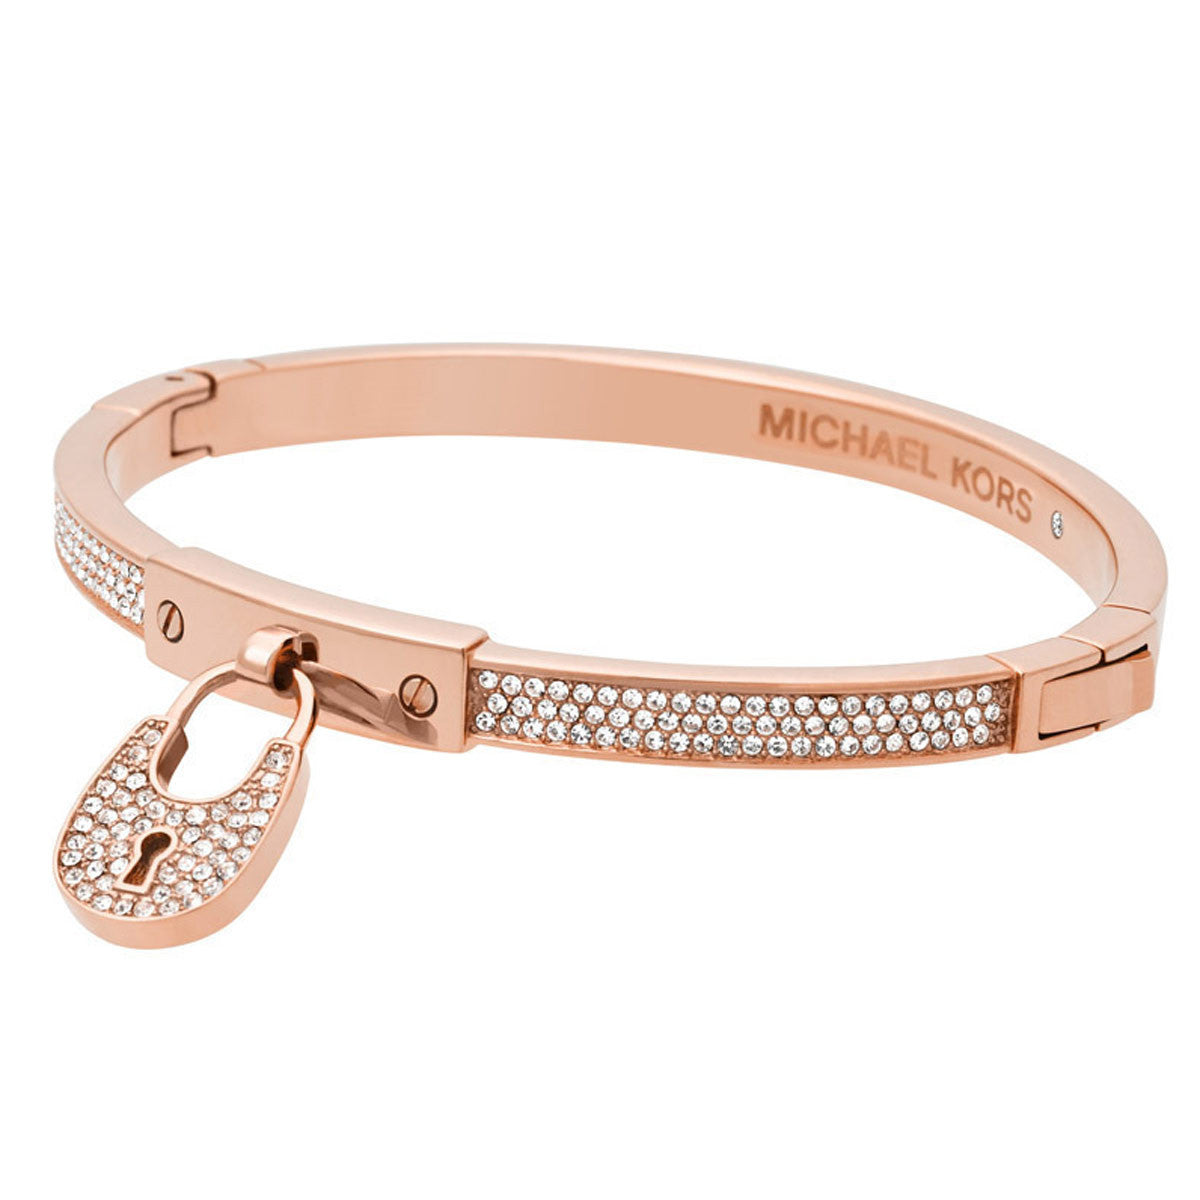 Michael Kors MKJ4885791 Women's Heritage Crystal Accented Rose Gold Steel Padlock Bangle Bracelet